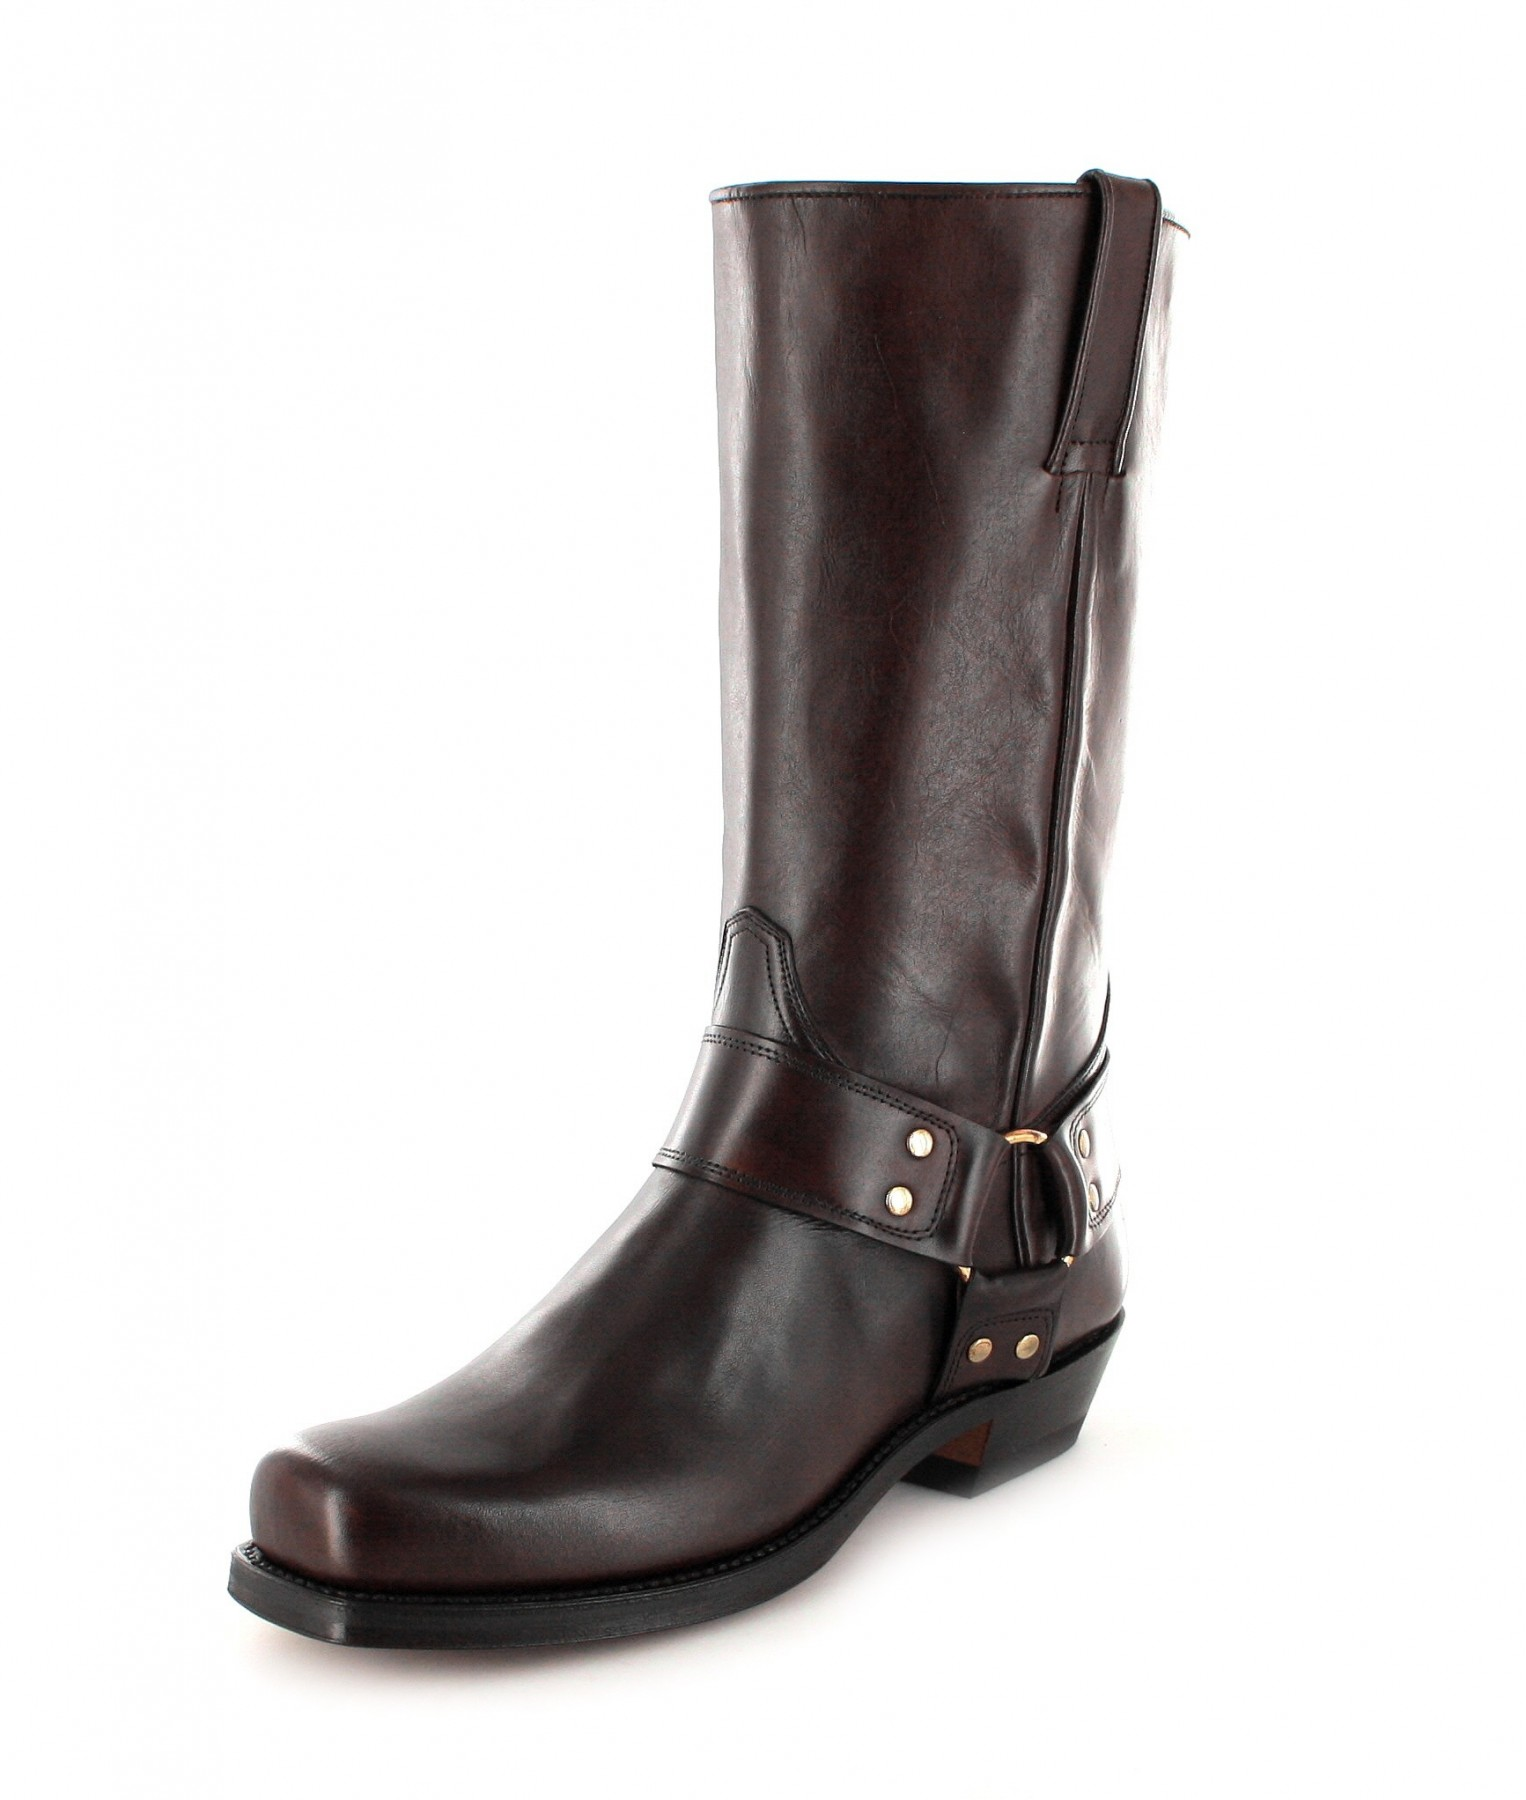 tony mora 1195 houst club marron biker boot - dark brown | fashion